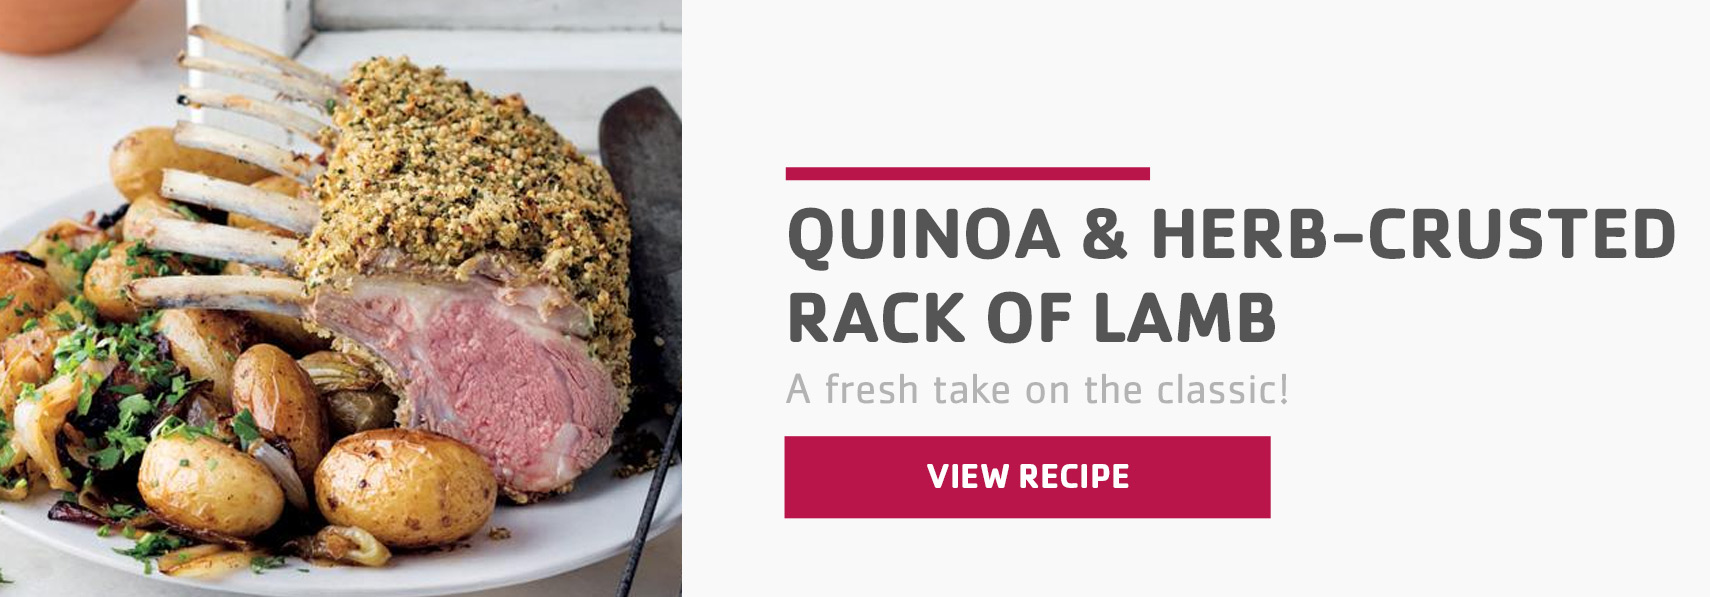 quinoa-and-herbcrusted-rack-of-lamb.jpg